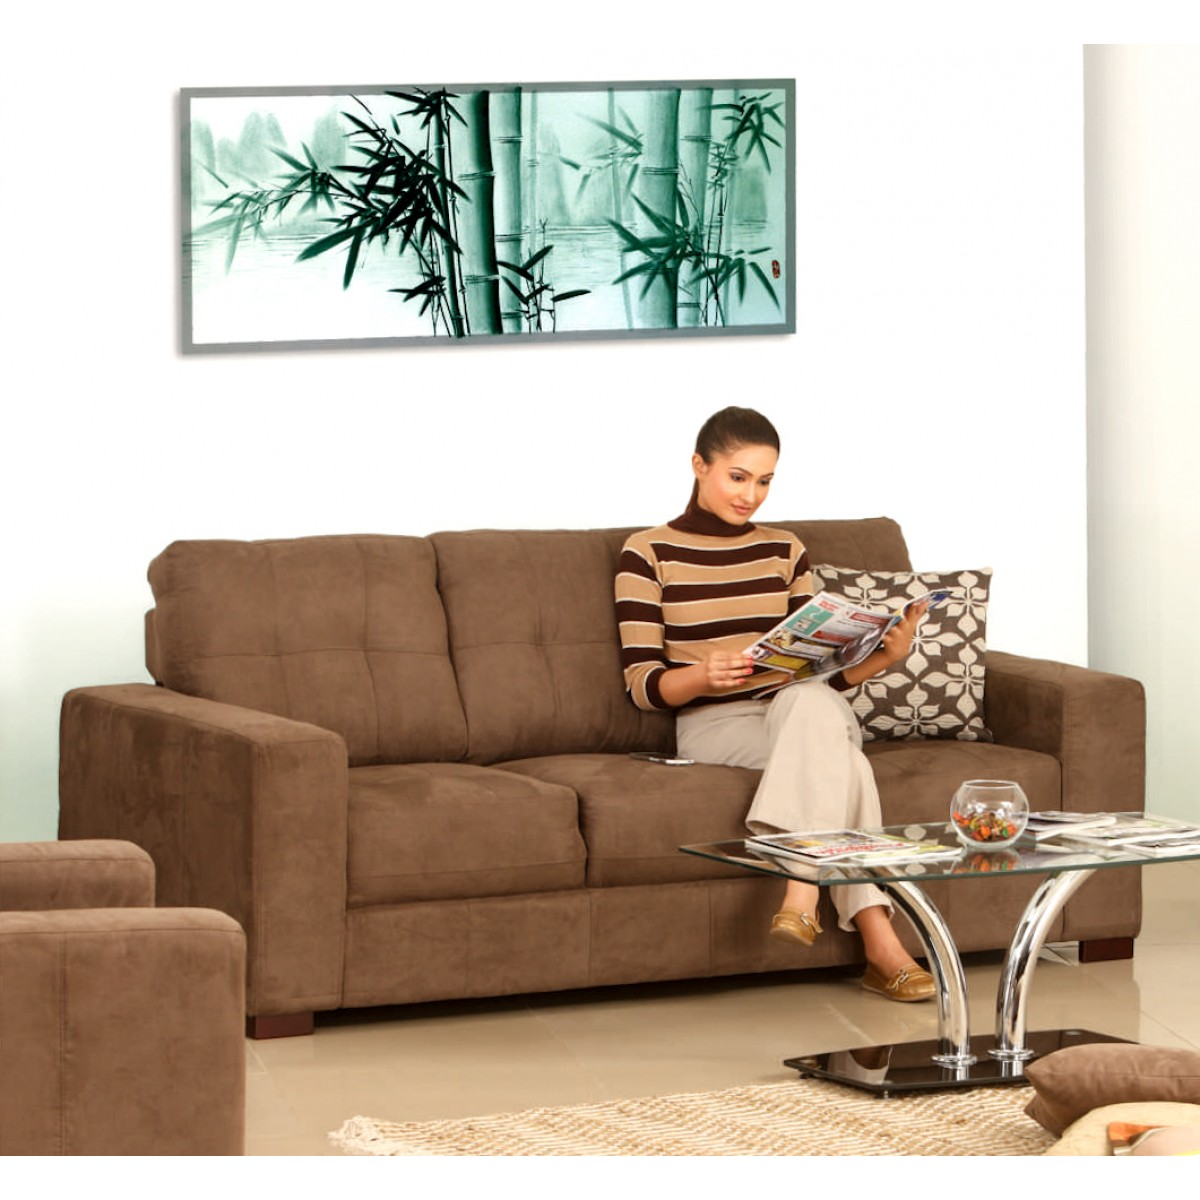 Sofa Repair Visakhapatnam Damro Furniture Hyderabad Reviews Damro Furniture Hyderabad